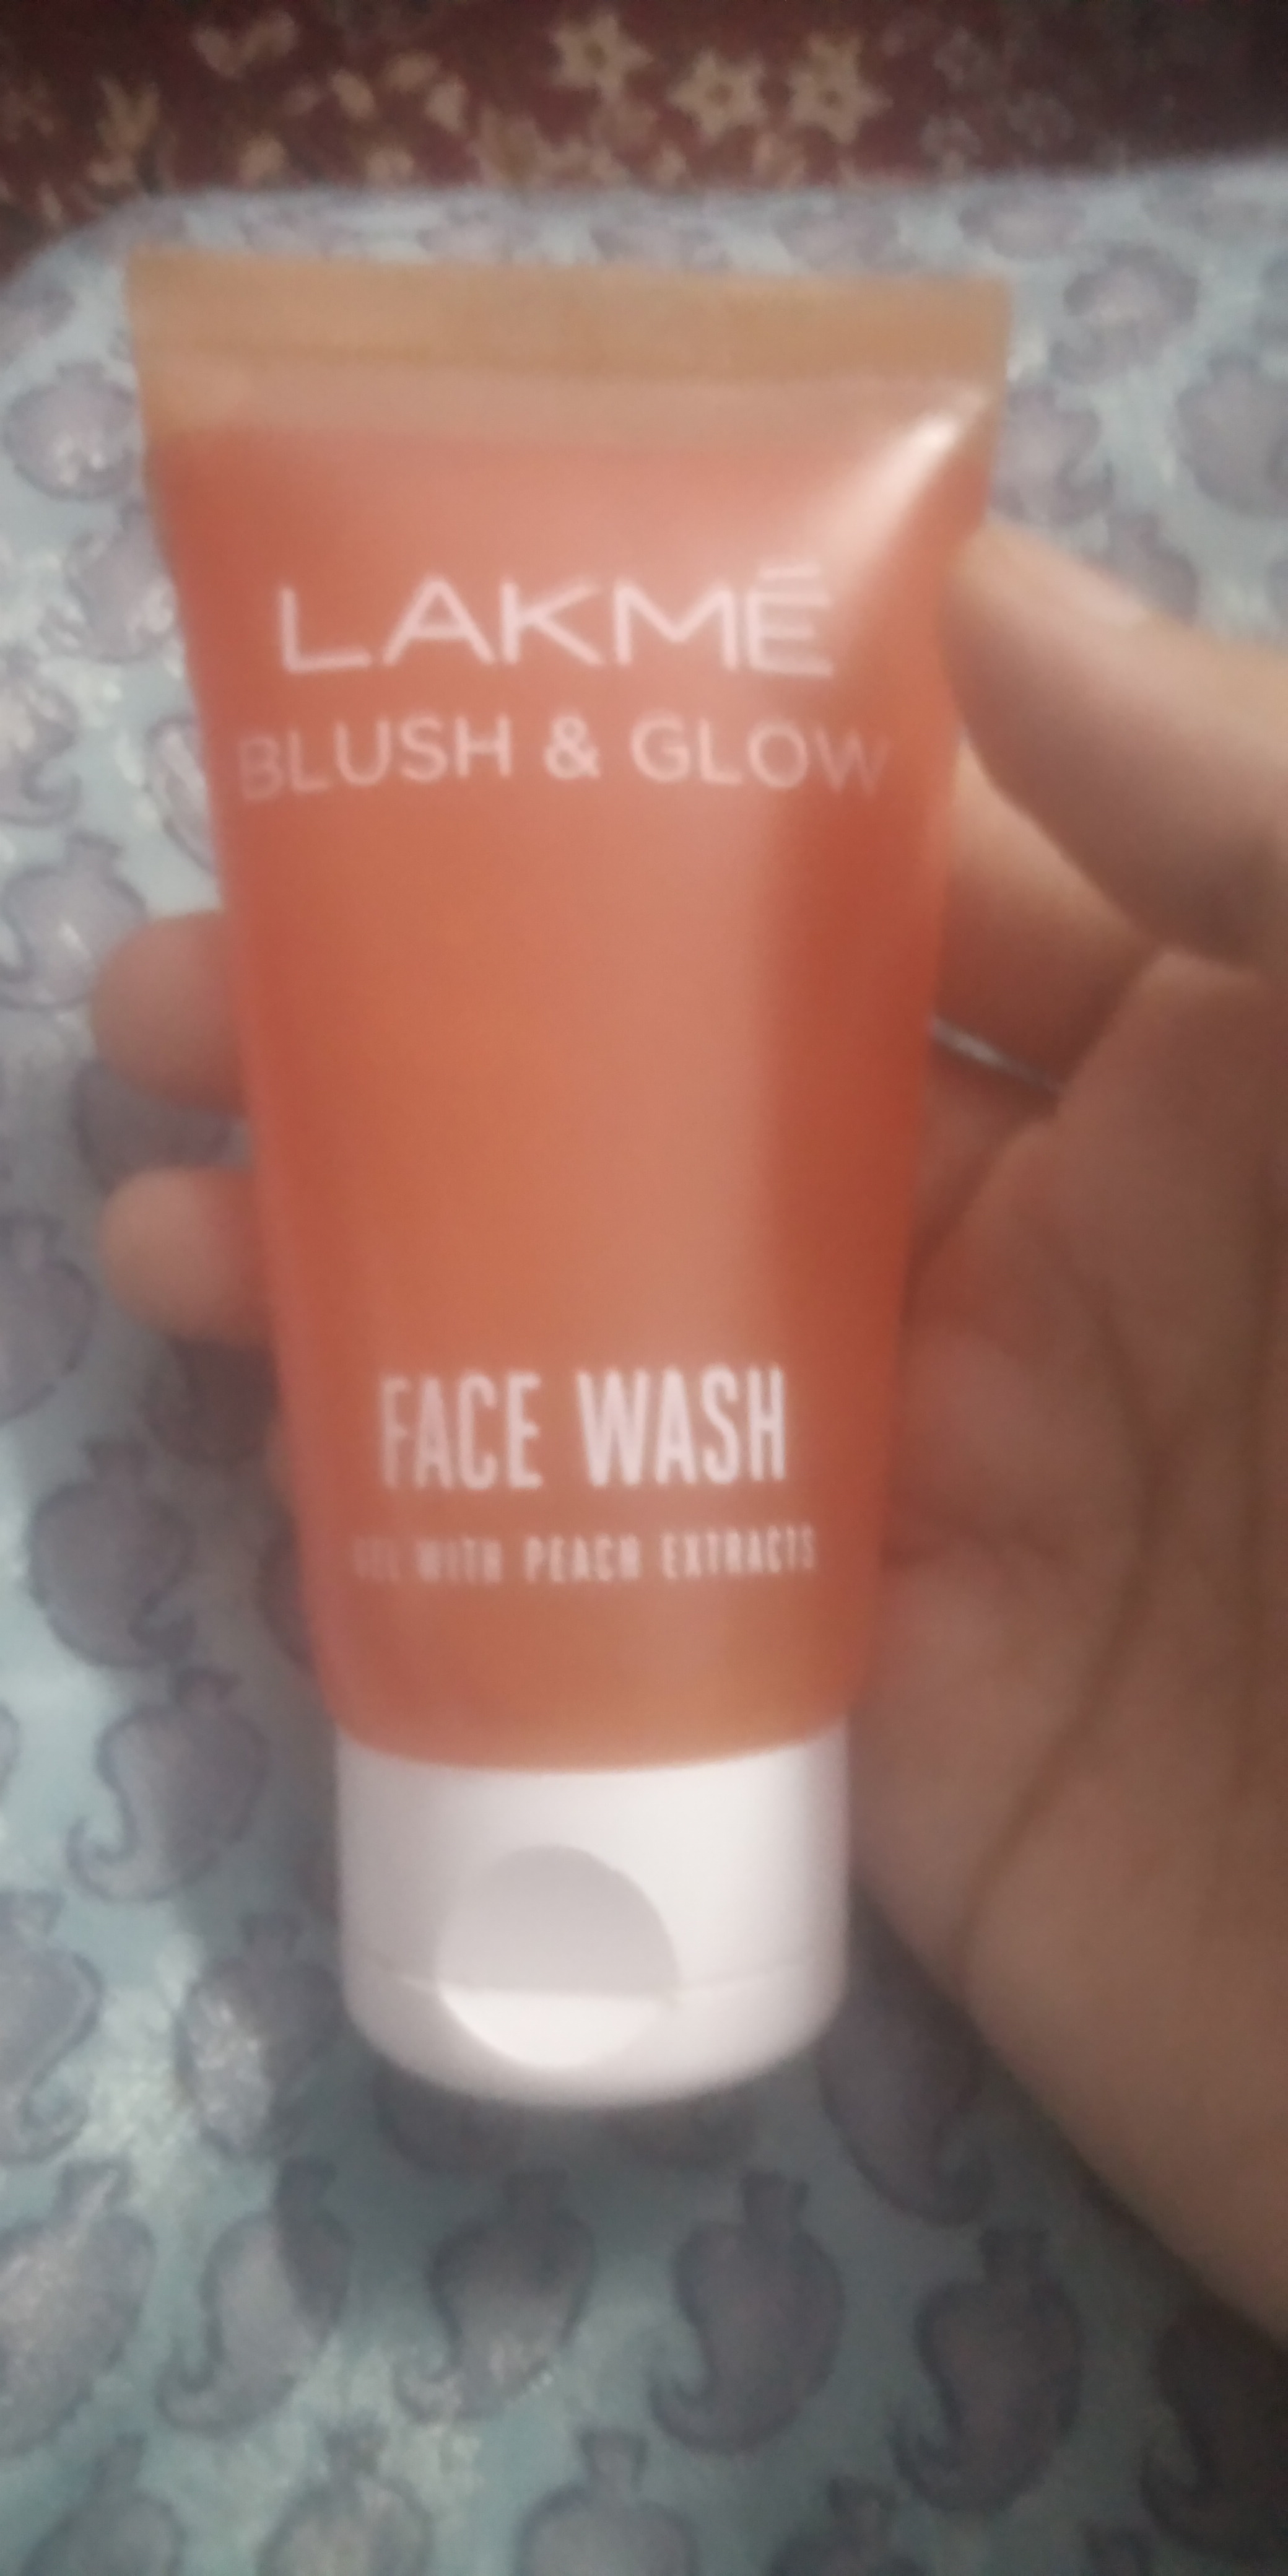 Lakme Blush & Glow Peach Gel Face Wash pic 3-Fruity scent face wash-By know.your.vanity